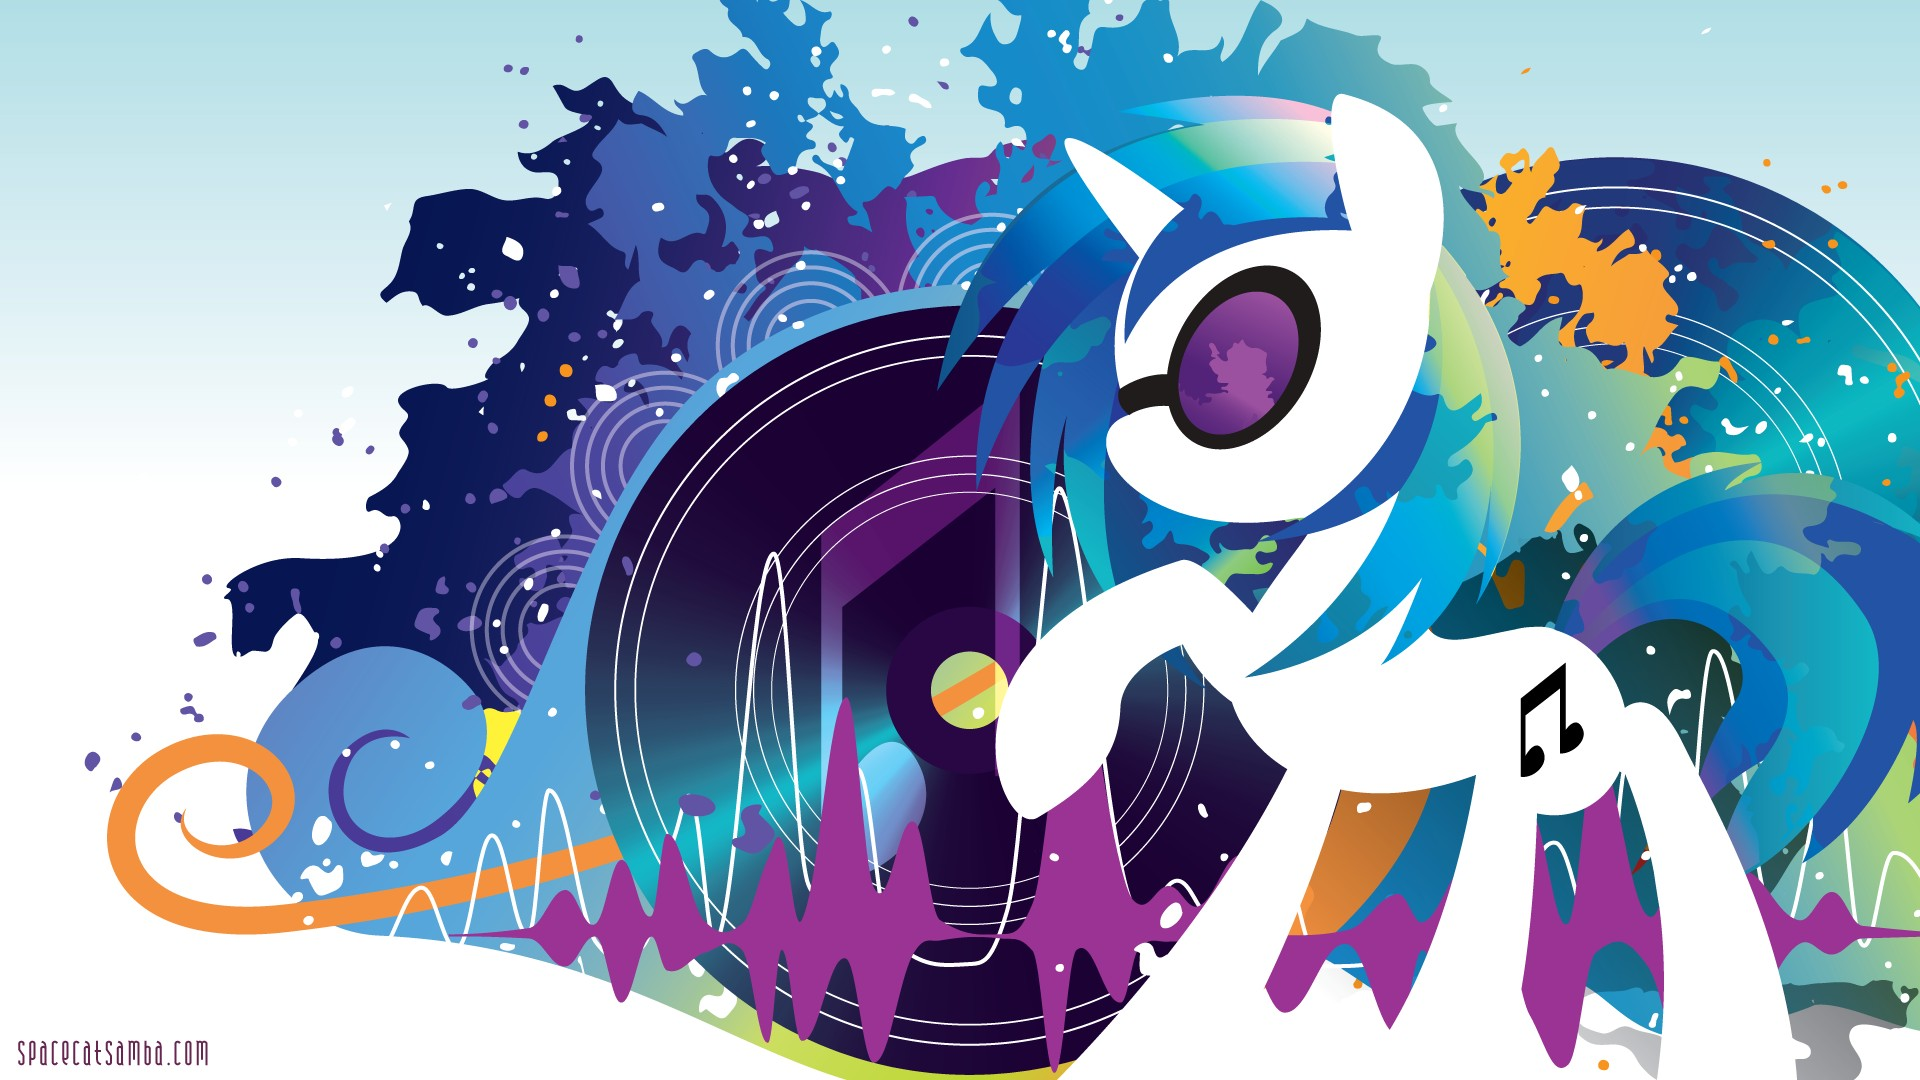 88+ mlp wallpapers ·① download free amazing hd wallpapers for